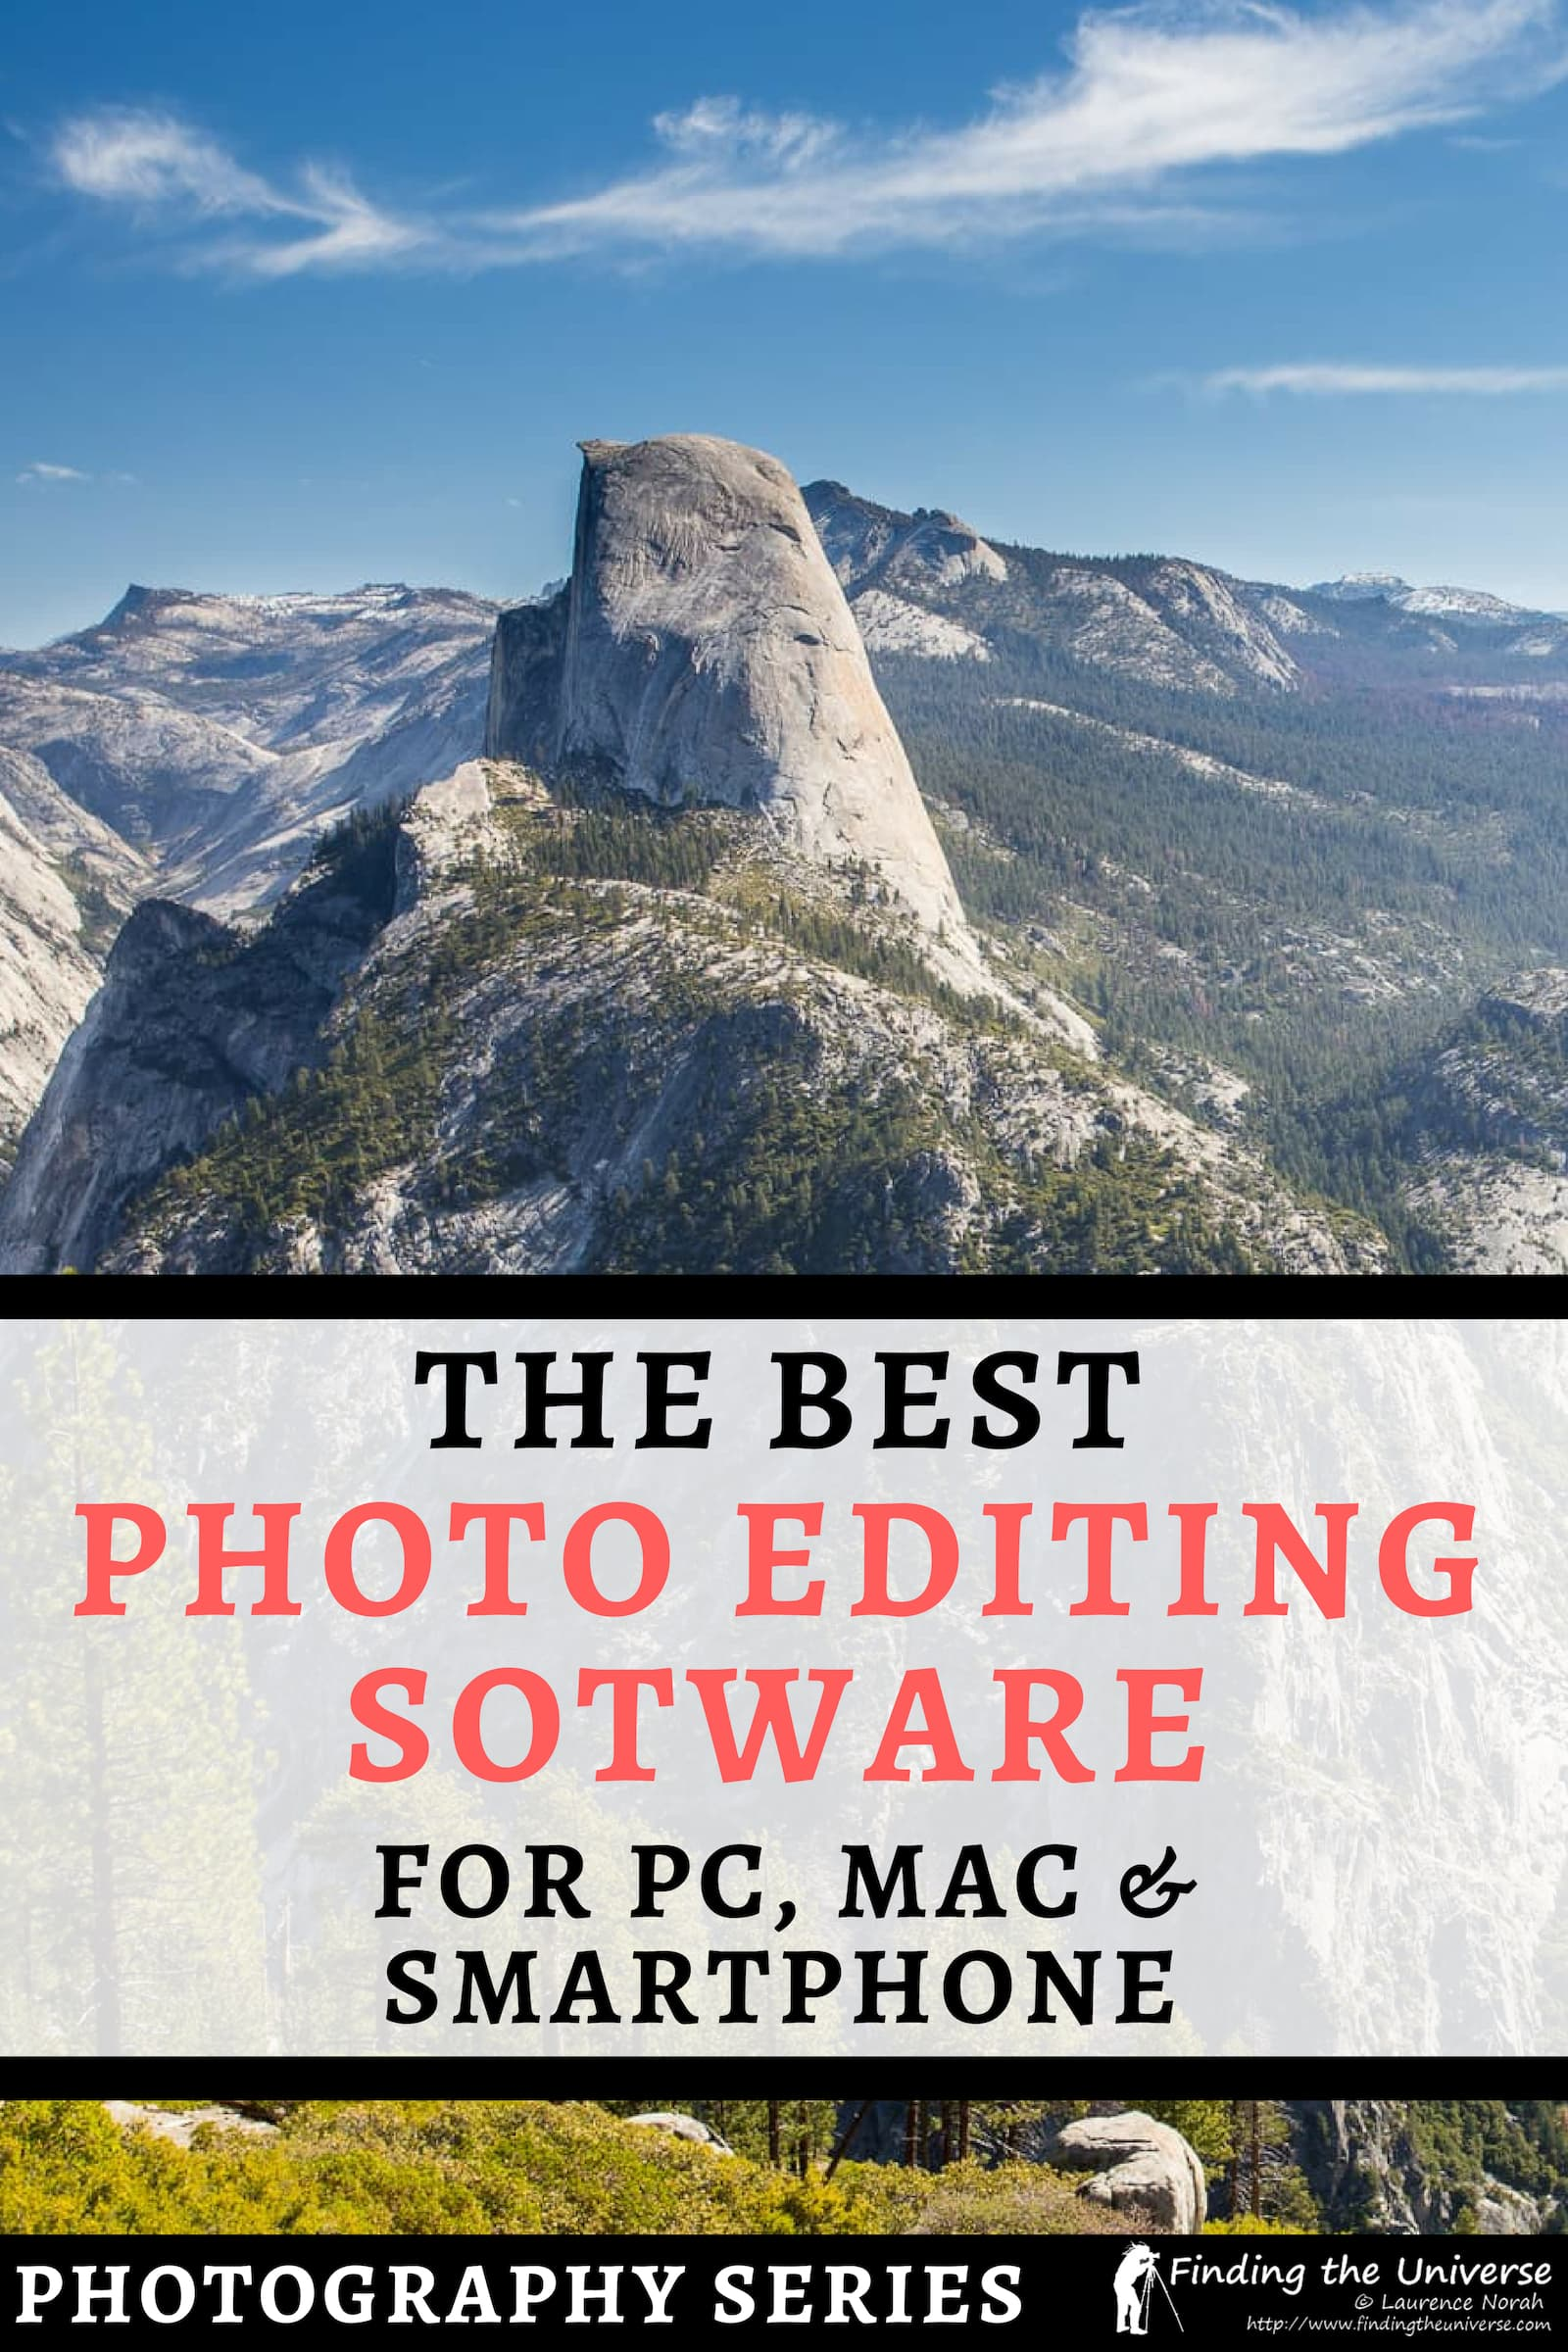 A guide to the best photo editing software and apps available. Includes a wide range of options, from free to paid, for all experience levels